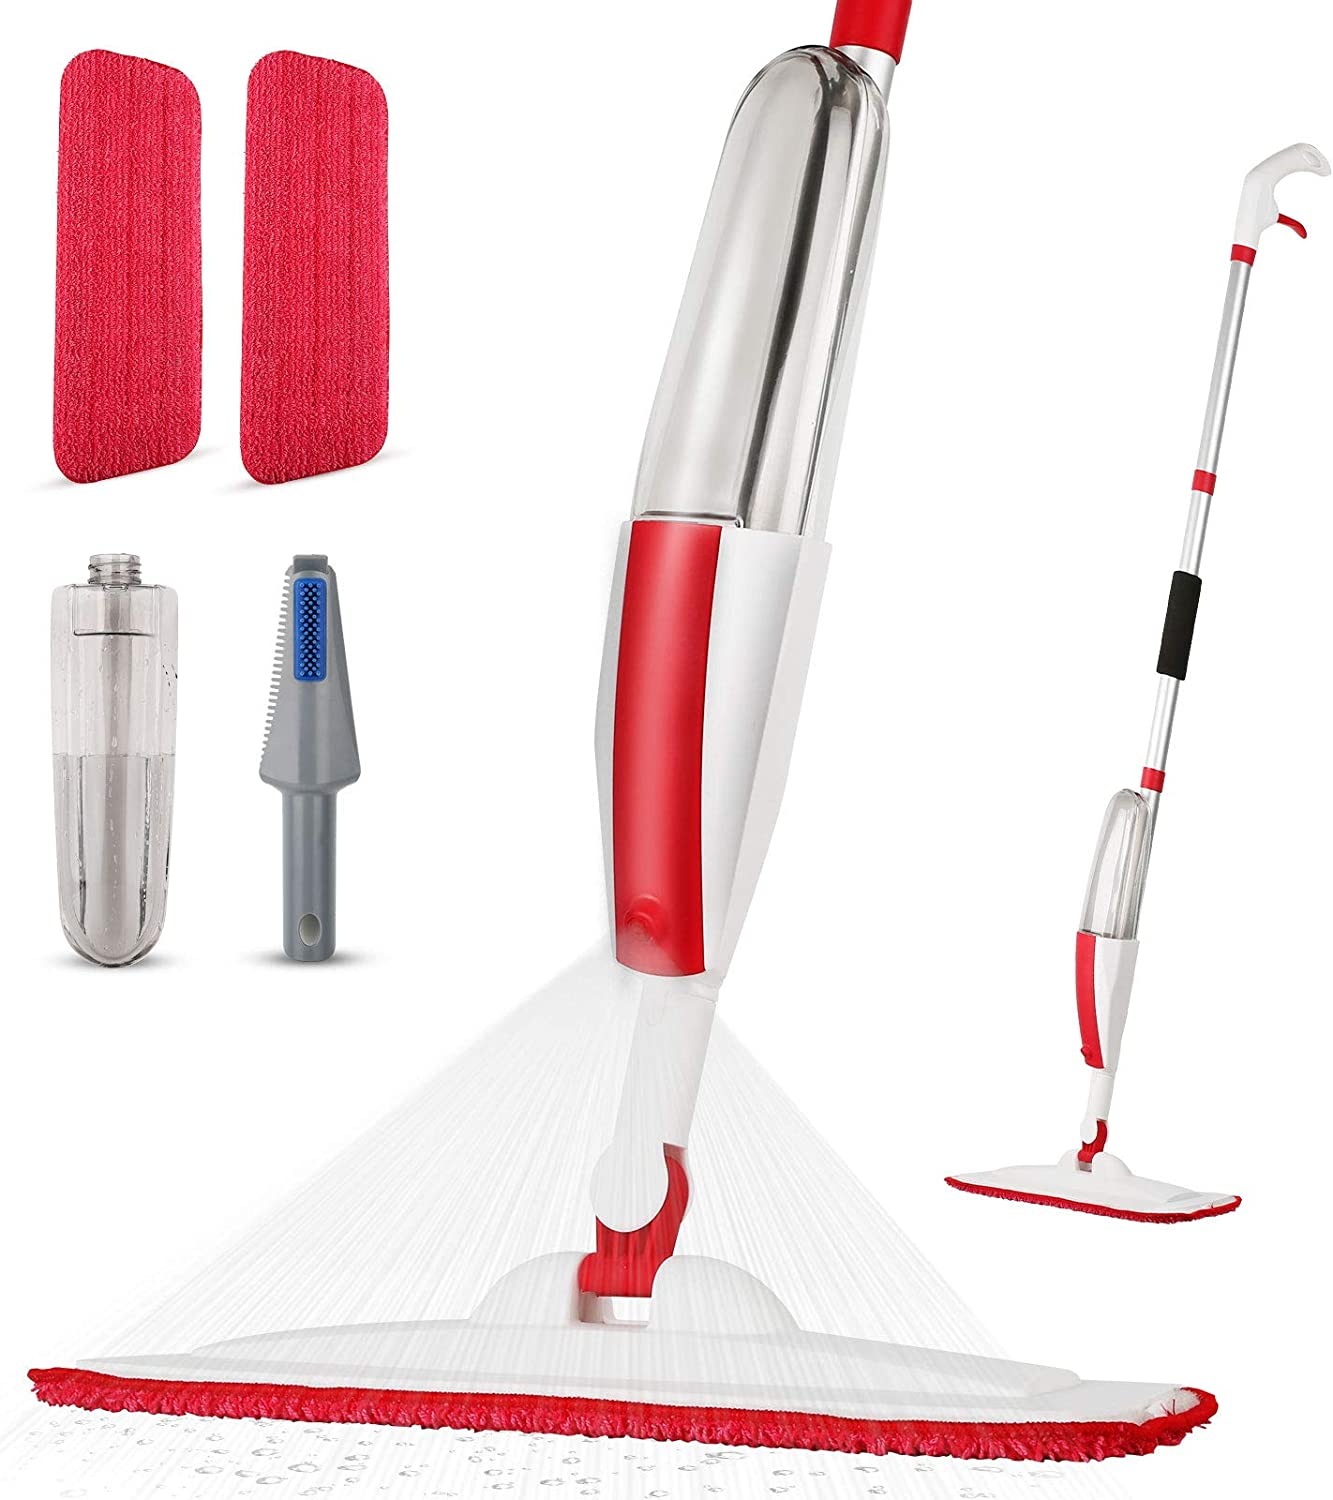 Spray Mop for Floor Cleaning Floor Mop with a Refillable Spray Bottle and 2 Washable Microfiber Pads Home or Commercial Use Dry Wet Flat Mop for Hardwood Laminate Wood Ceramic Tiles Floor